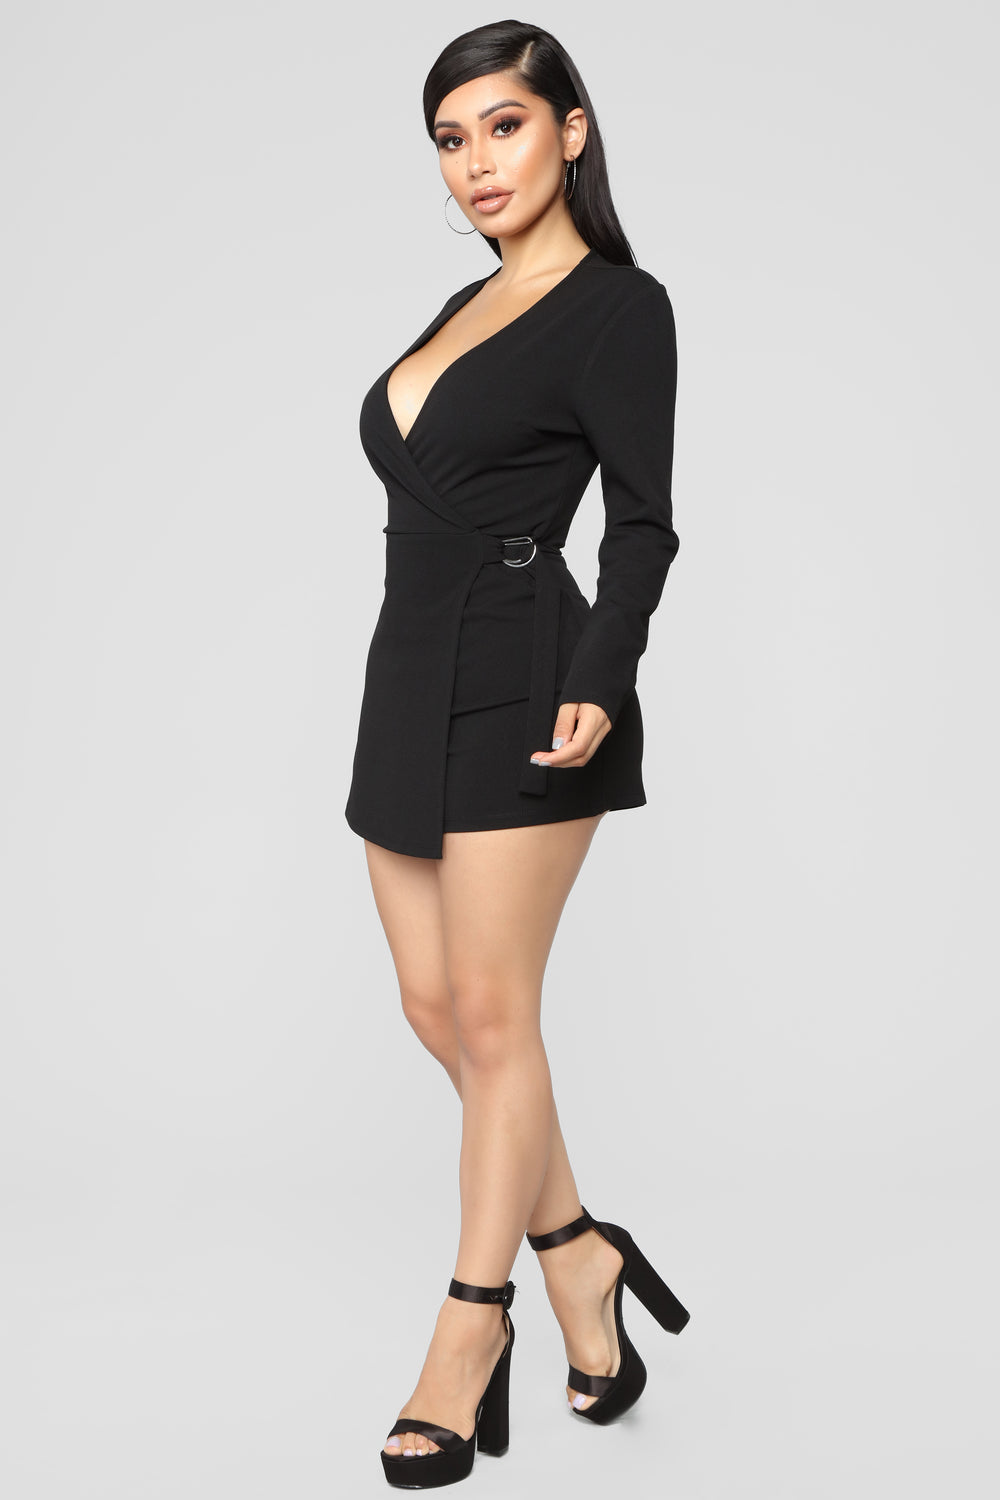 The Night Has Just Begun Romper - Black